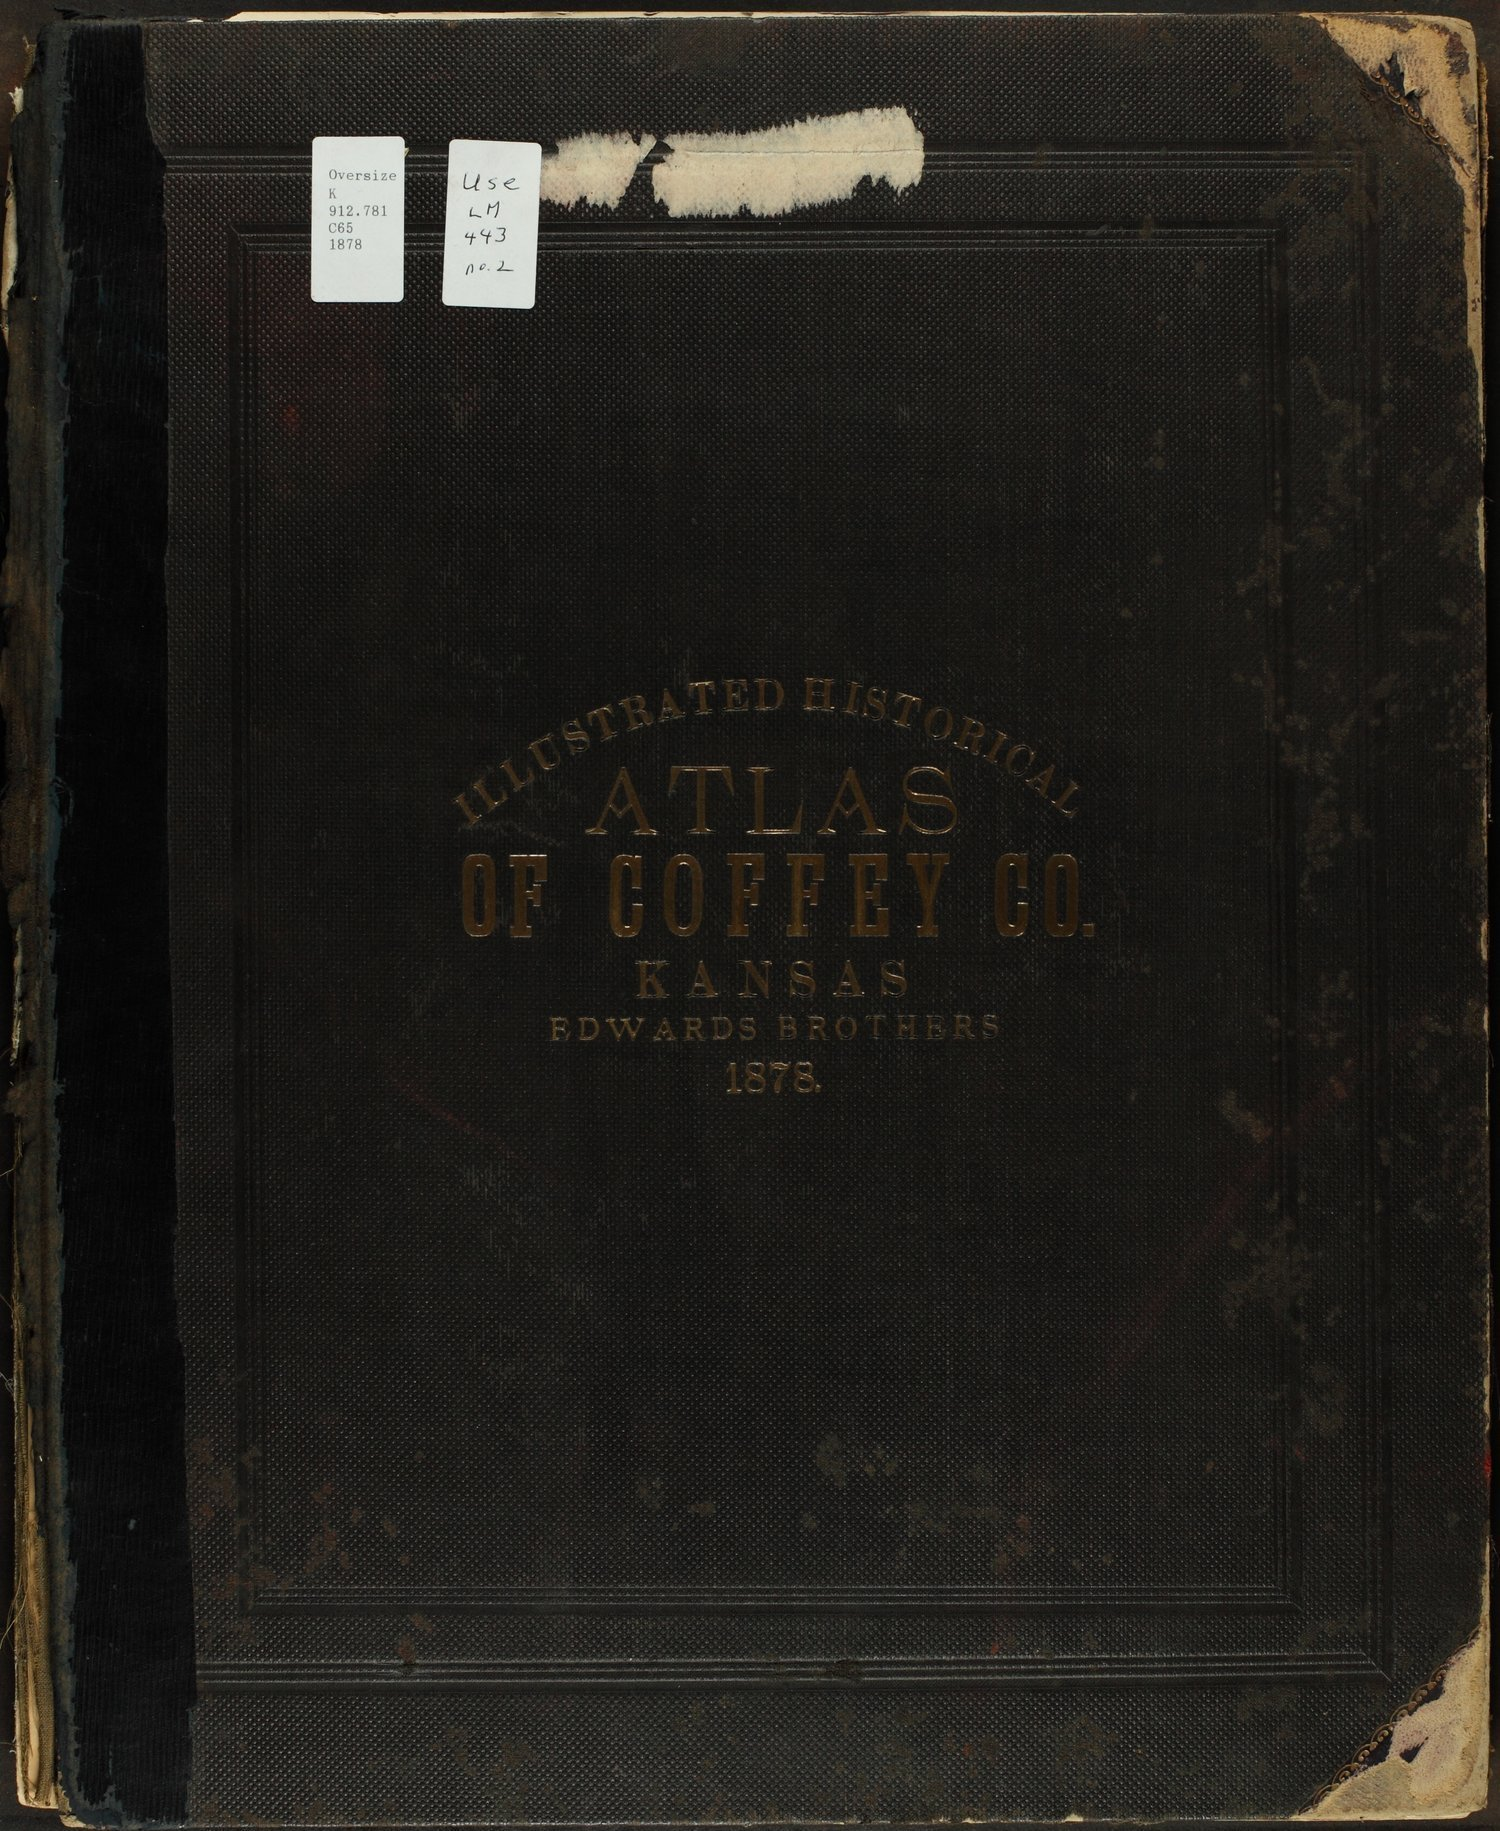 An illustrated historical atlas of Coffey County, Kansas - Front Cover